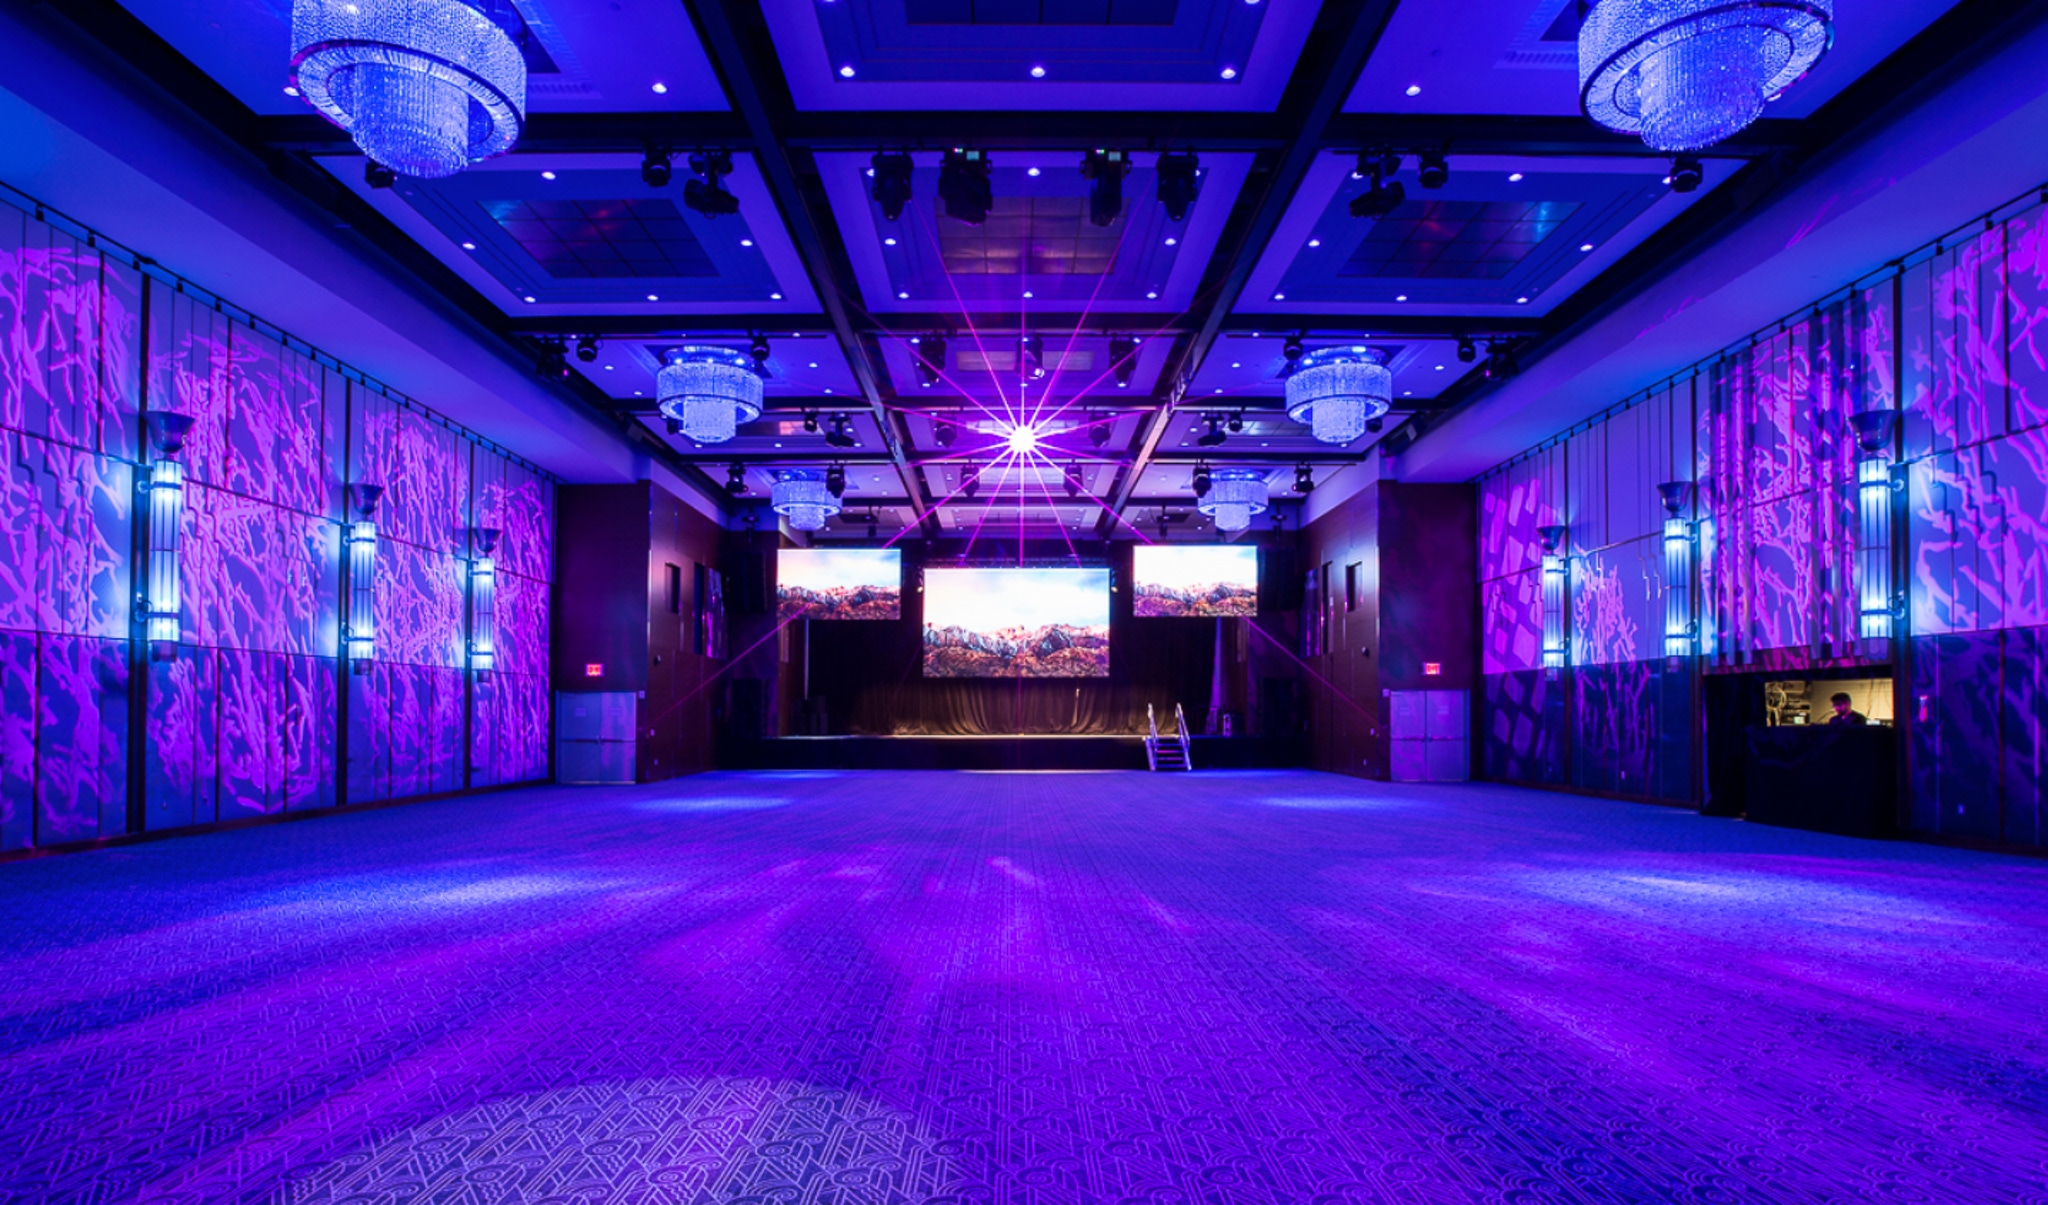 New York event space - ZiegfeldBallroom